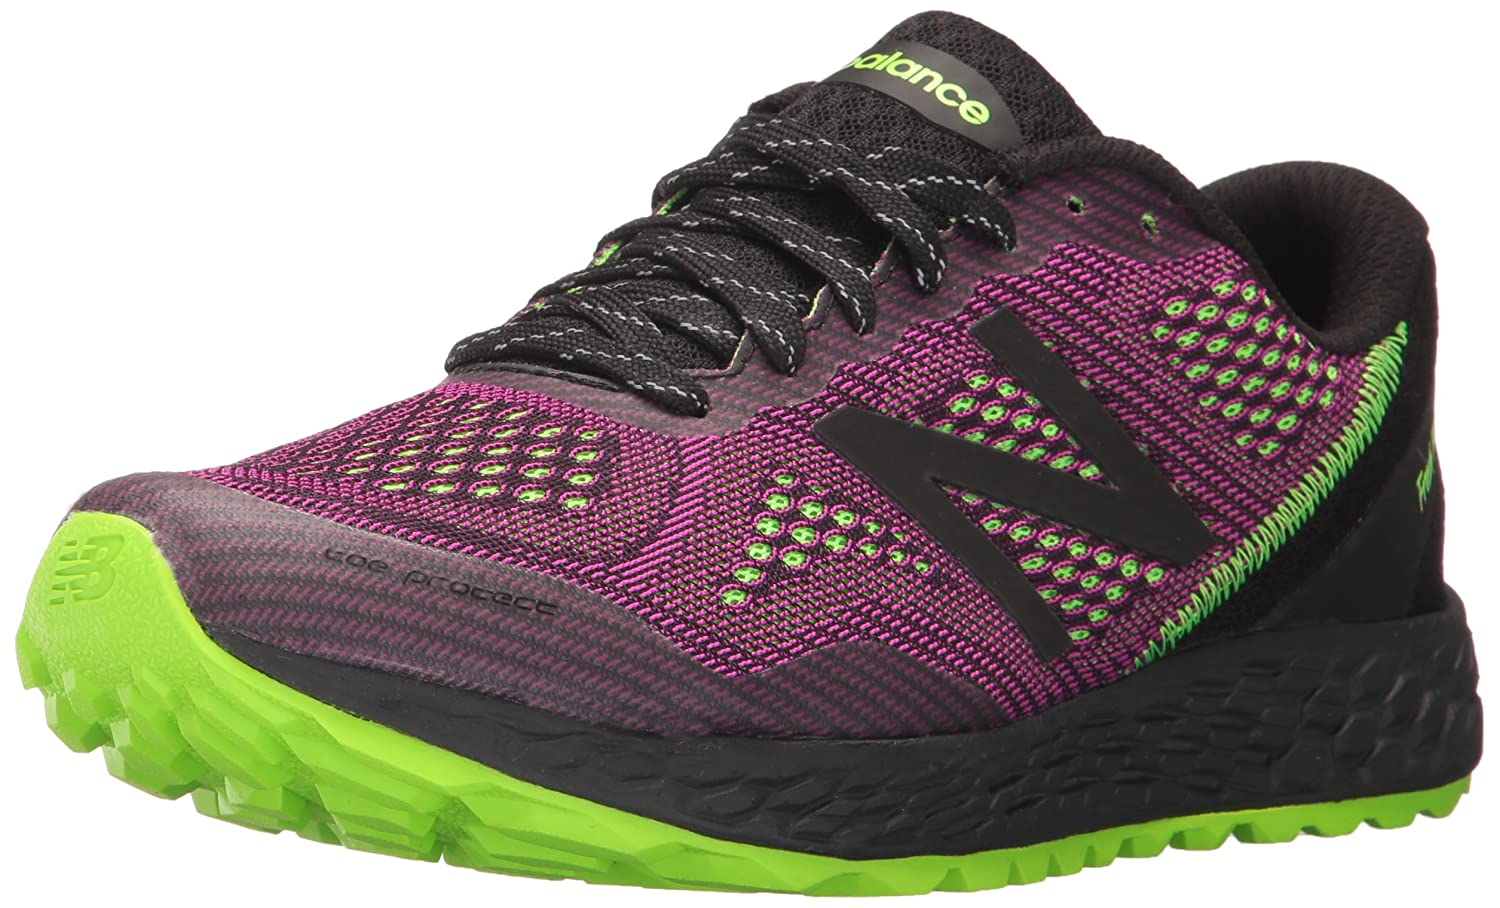 New Balance Women's Gobiv2 Running Shoe B01MTQ89AT 7.5 B(M) US|Poisonberry/Black